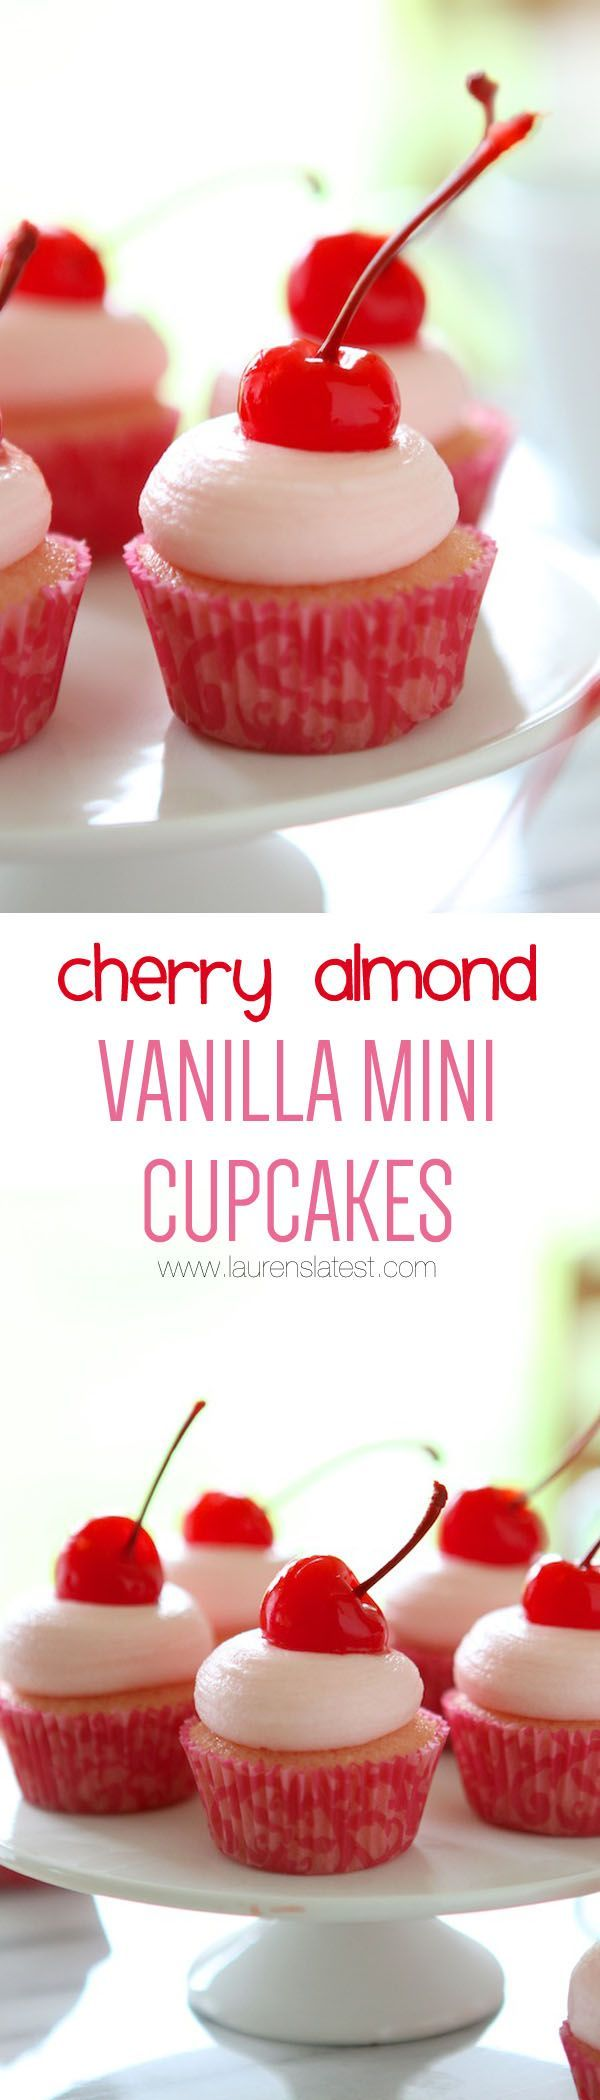 Cherry Almond Vanilla Mini Cupcakes... Aren't these just the cutest things ever? They'd be perfect for Valentine's Day!